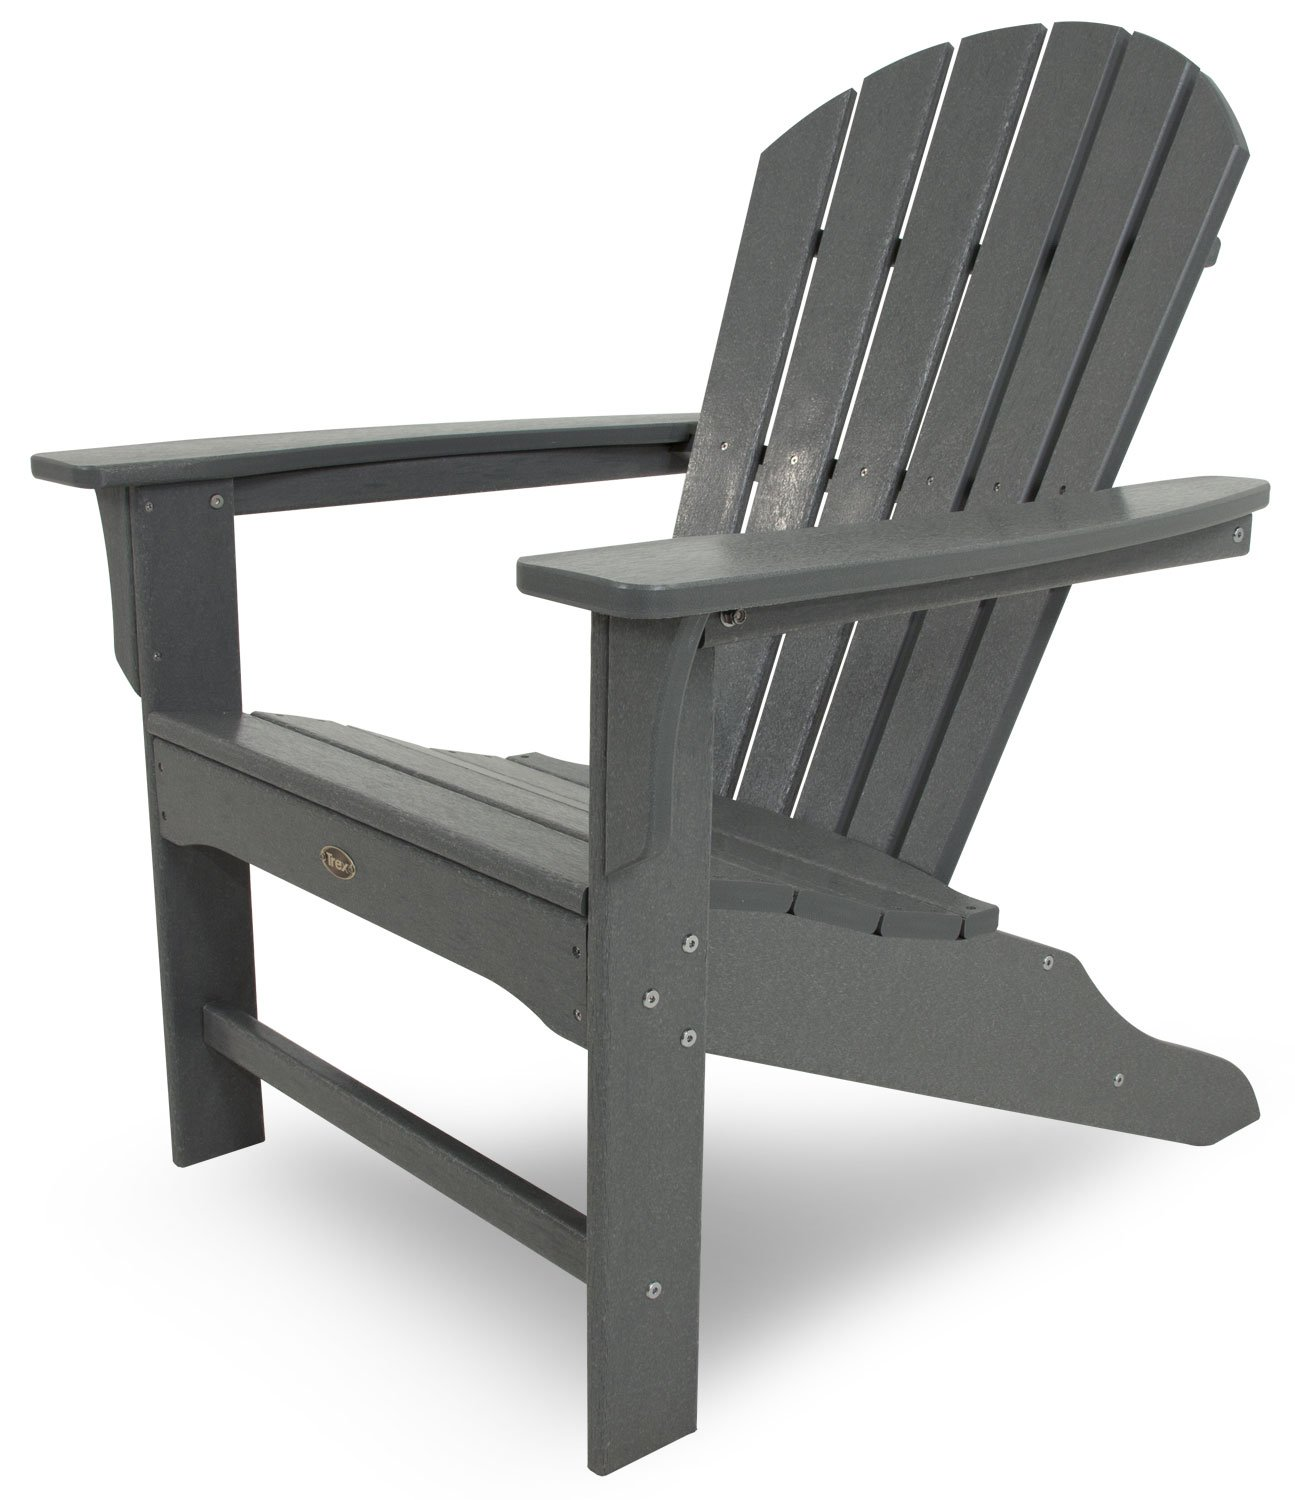 Wonderful Trex Outdoor Furniture Cape Cod Adirondack Chair, Stepping Stone Product  Image